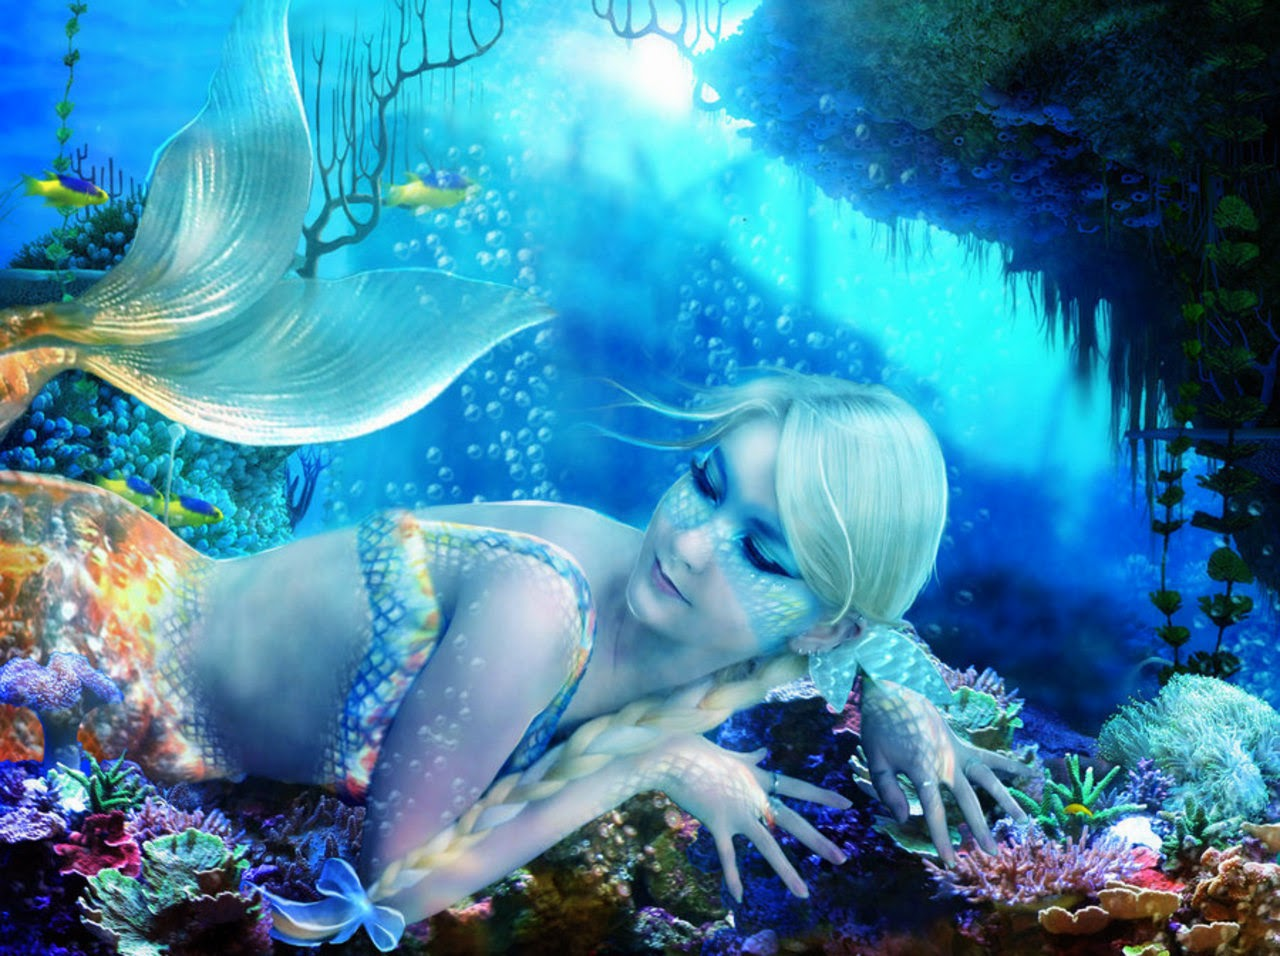 mermaid-girls-beautiful-photoshoot-underwater-reef-photoshop-image-1280x956.jpg